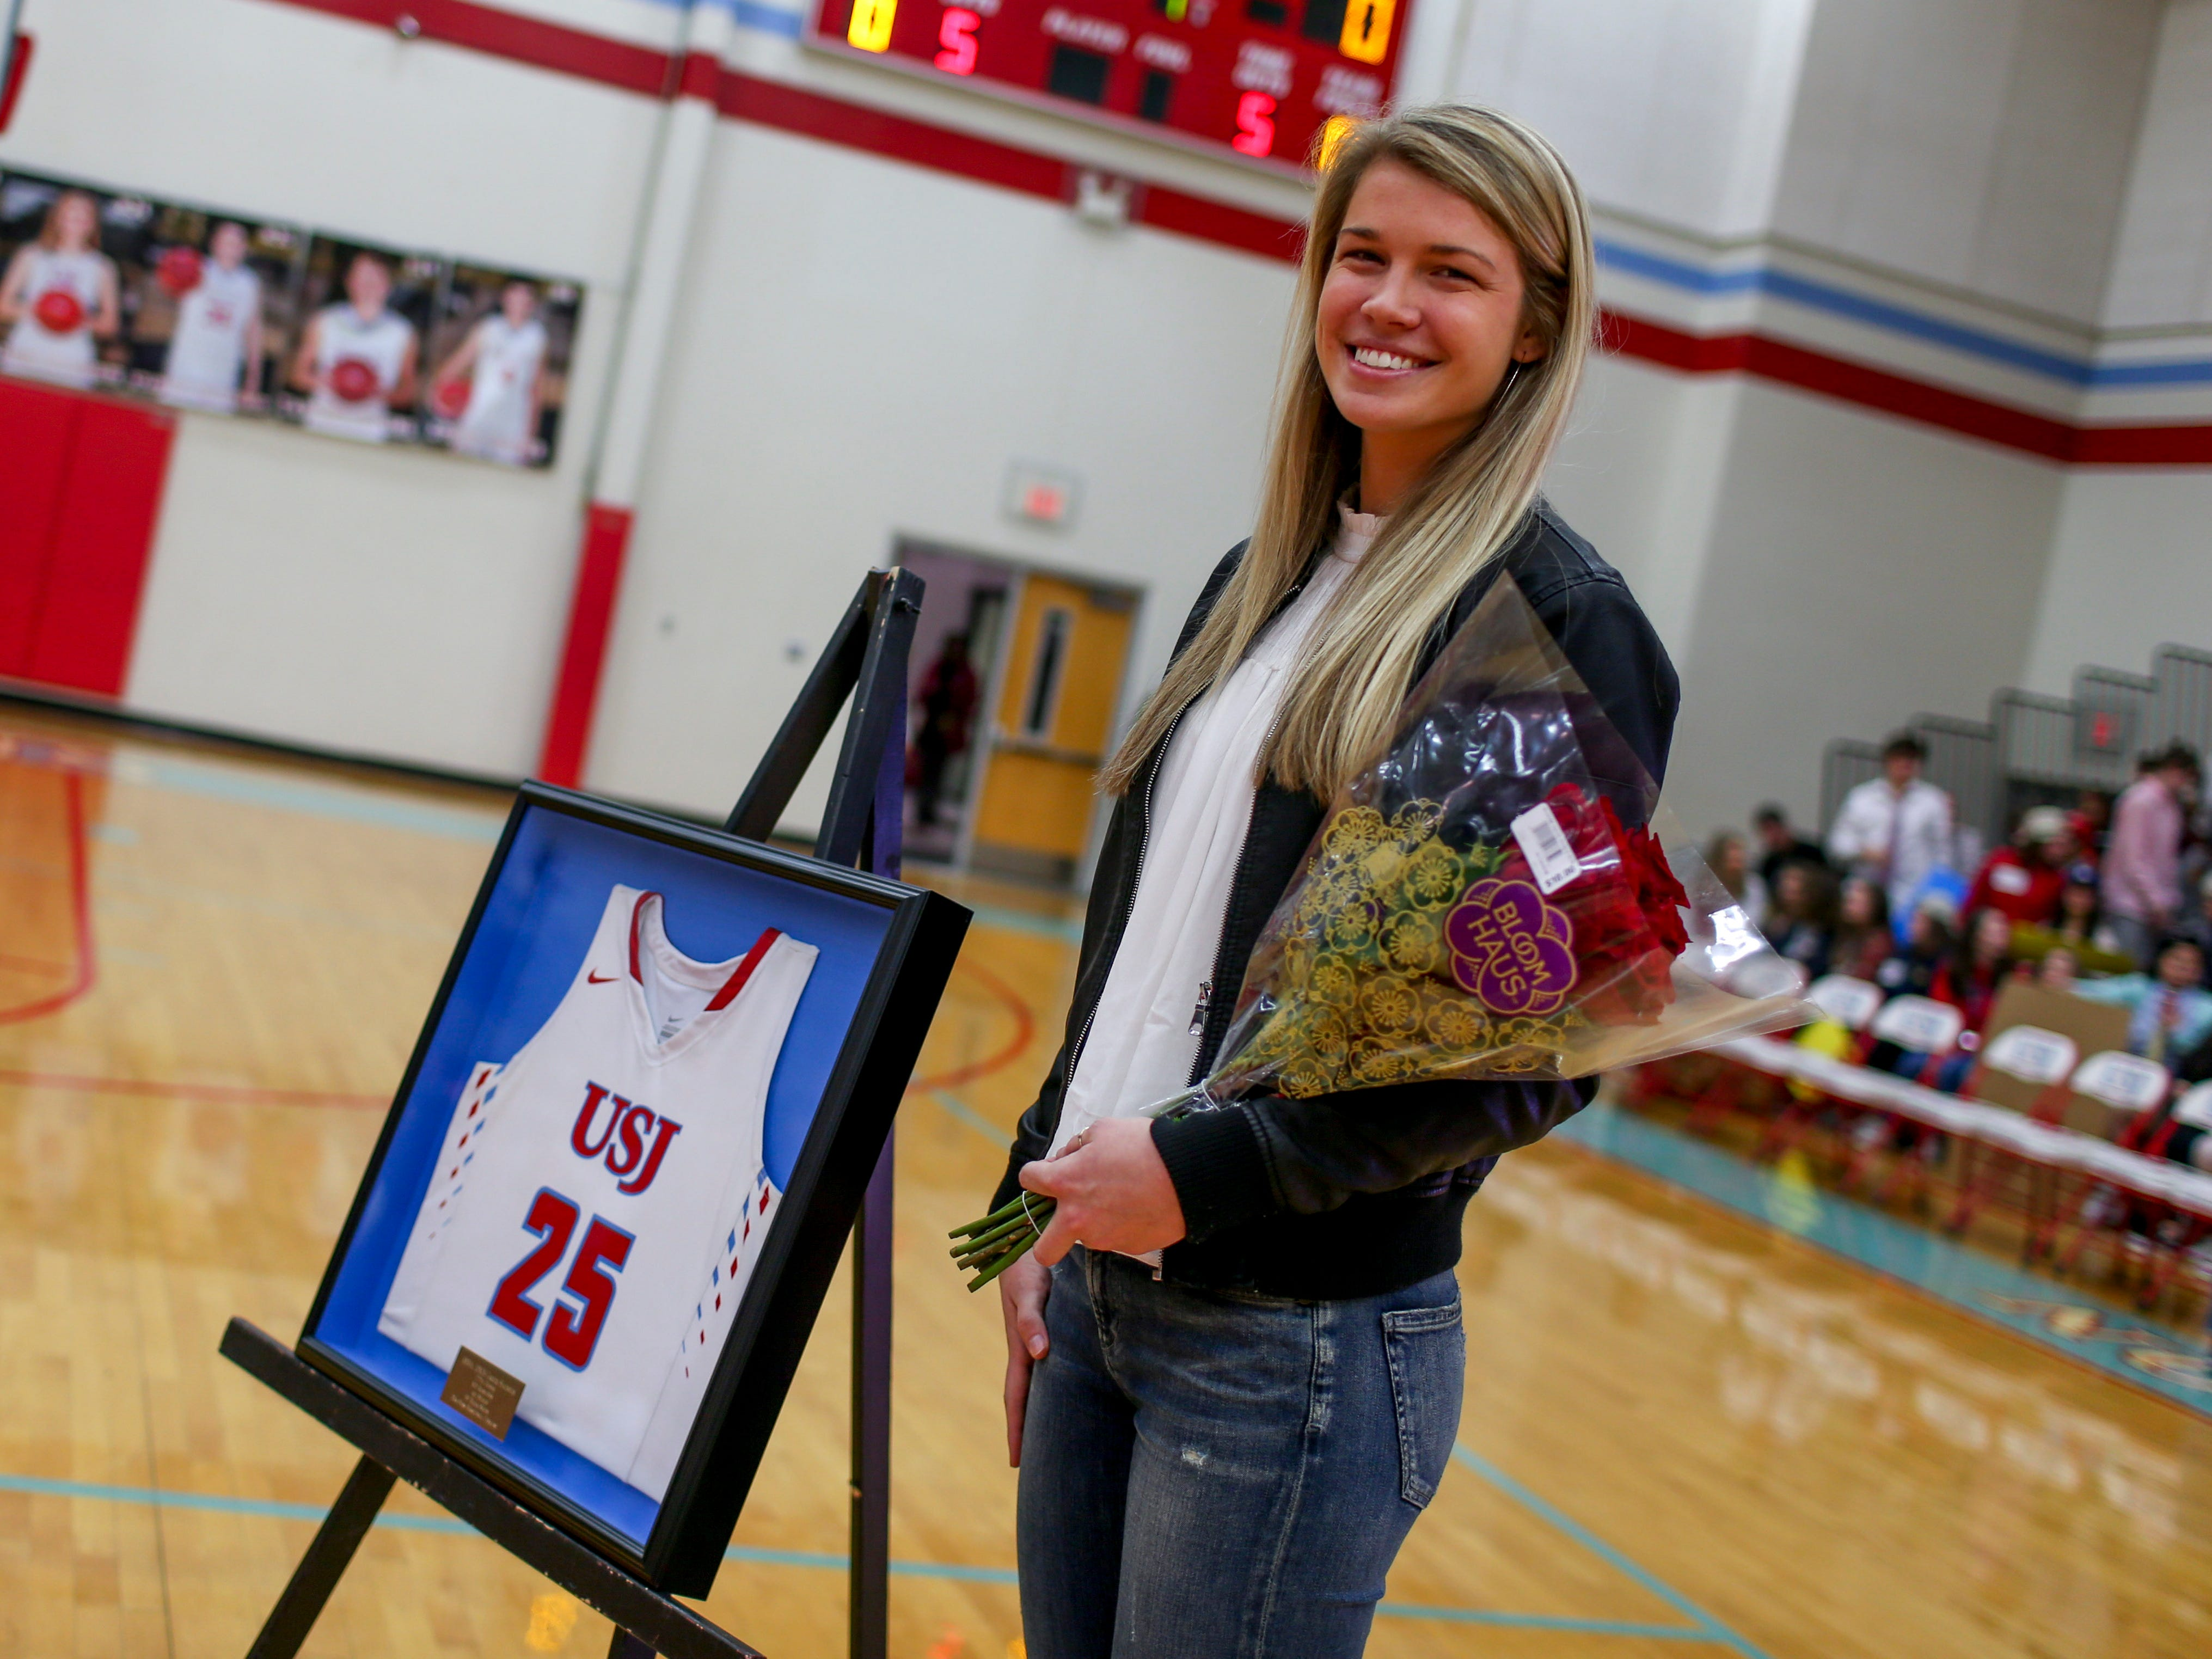 Anna Jones smiles next to her old jersey that can be seen in a frame during the retirement ceremony of her old jersey number 25 at University School of Jackson in Jackson, Tenn., on Friday, Dec. 7, 2018.